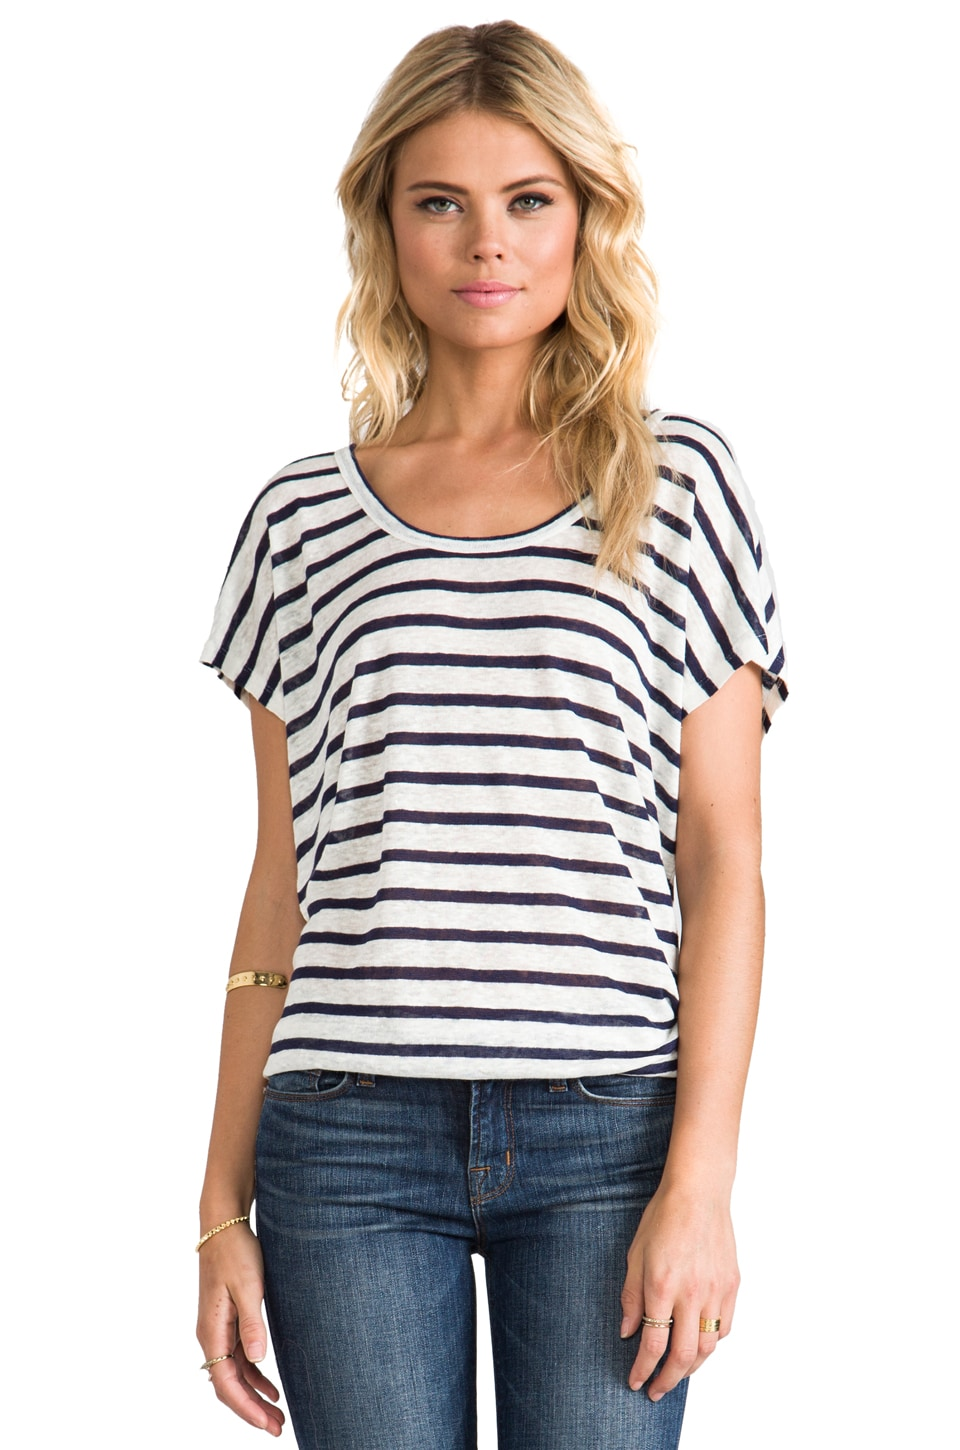 Joie Maddie Top in Porcelain w/ Dark Navy